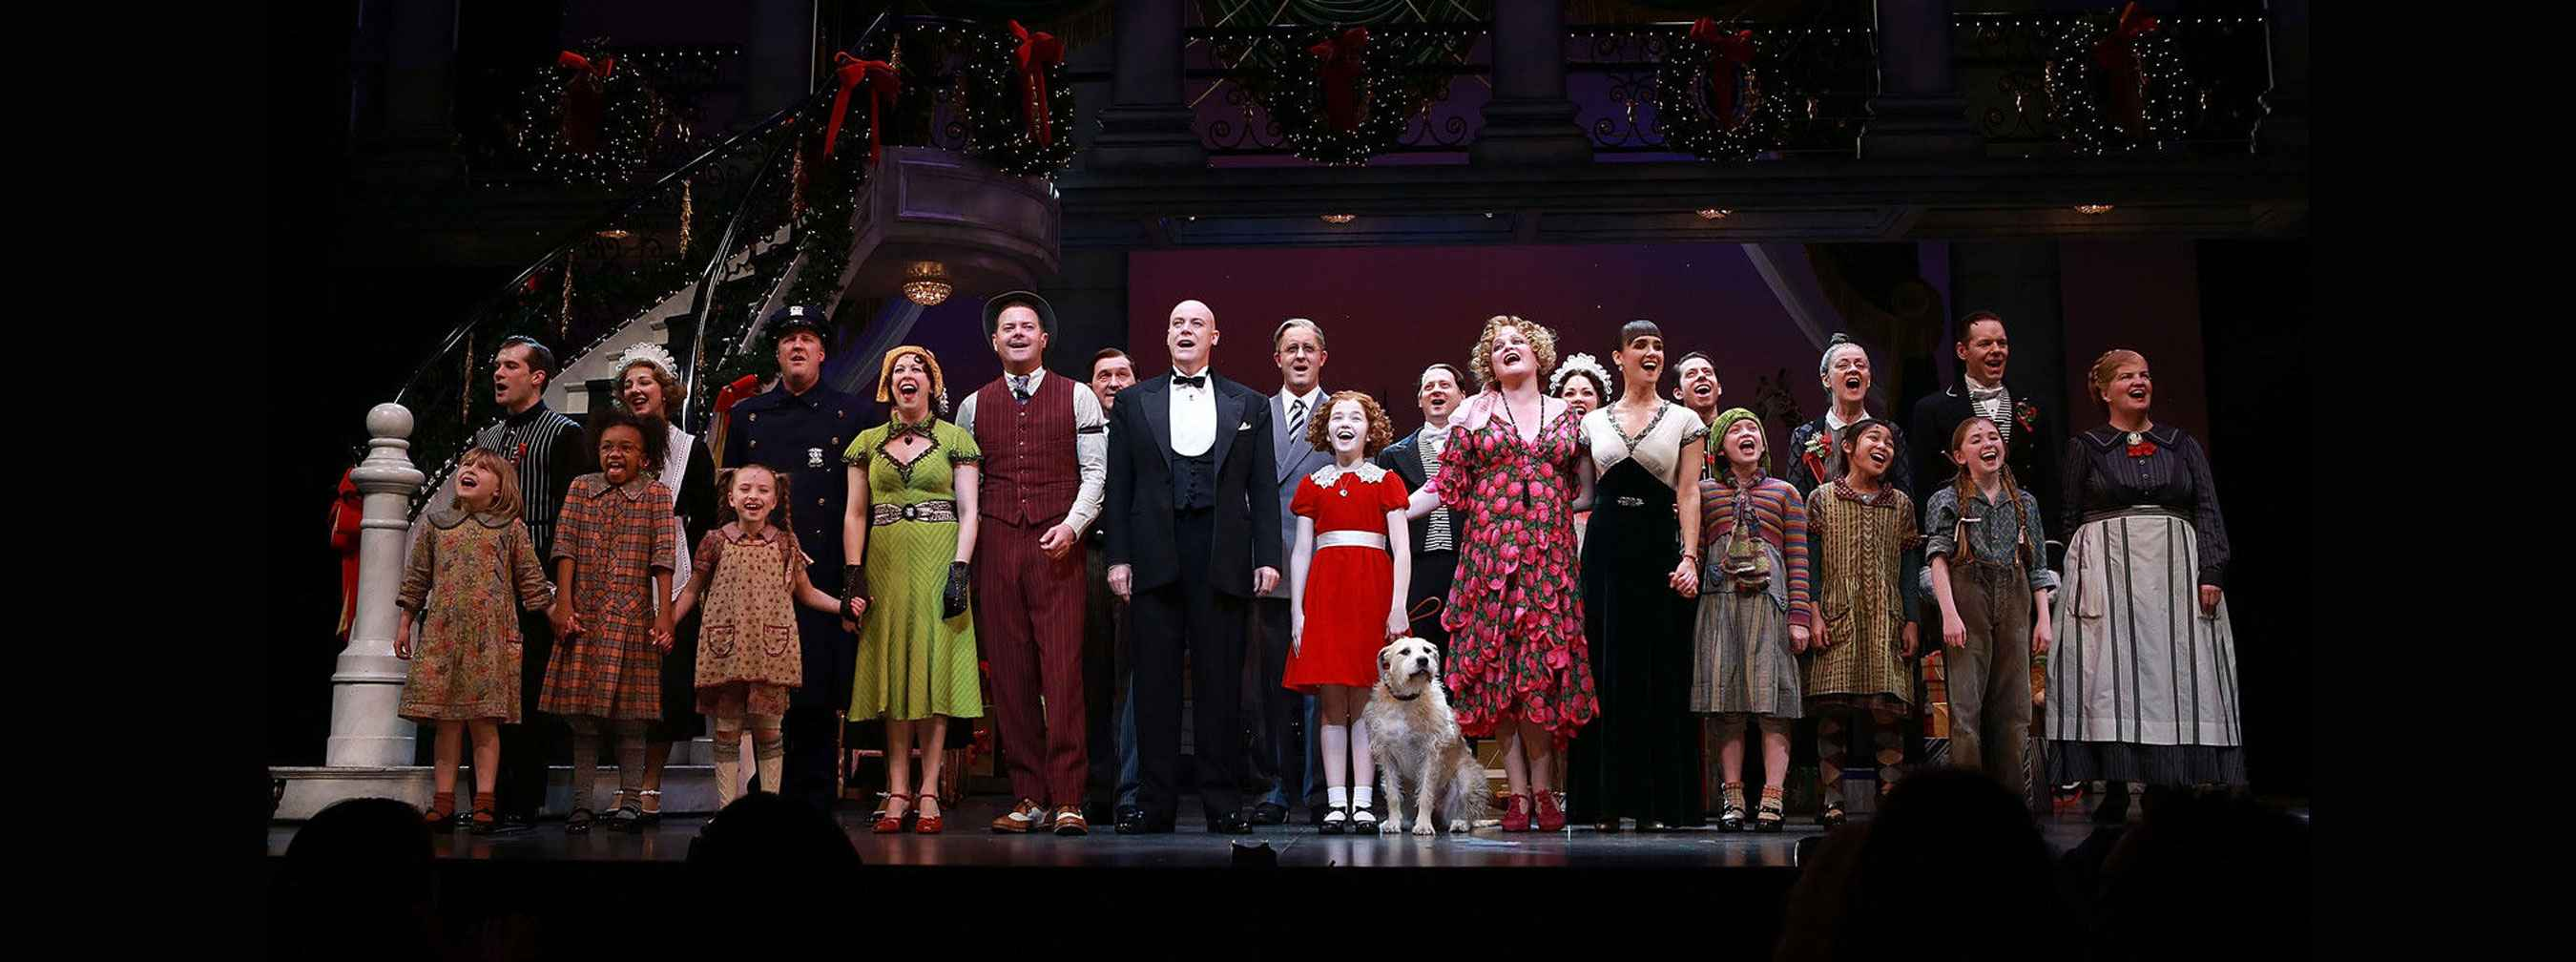 Cast of Annie at the Ordway Center for Performing Arts, Friends of Gillette gala